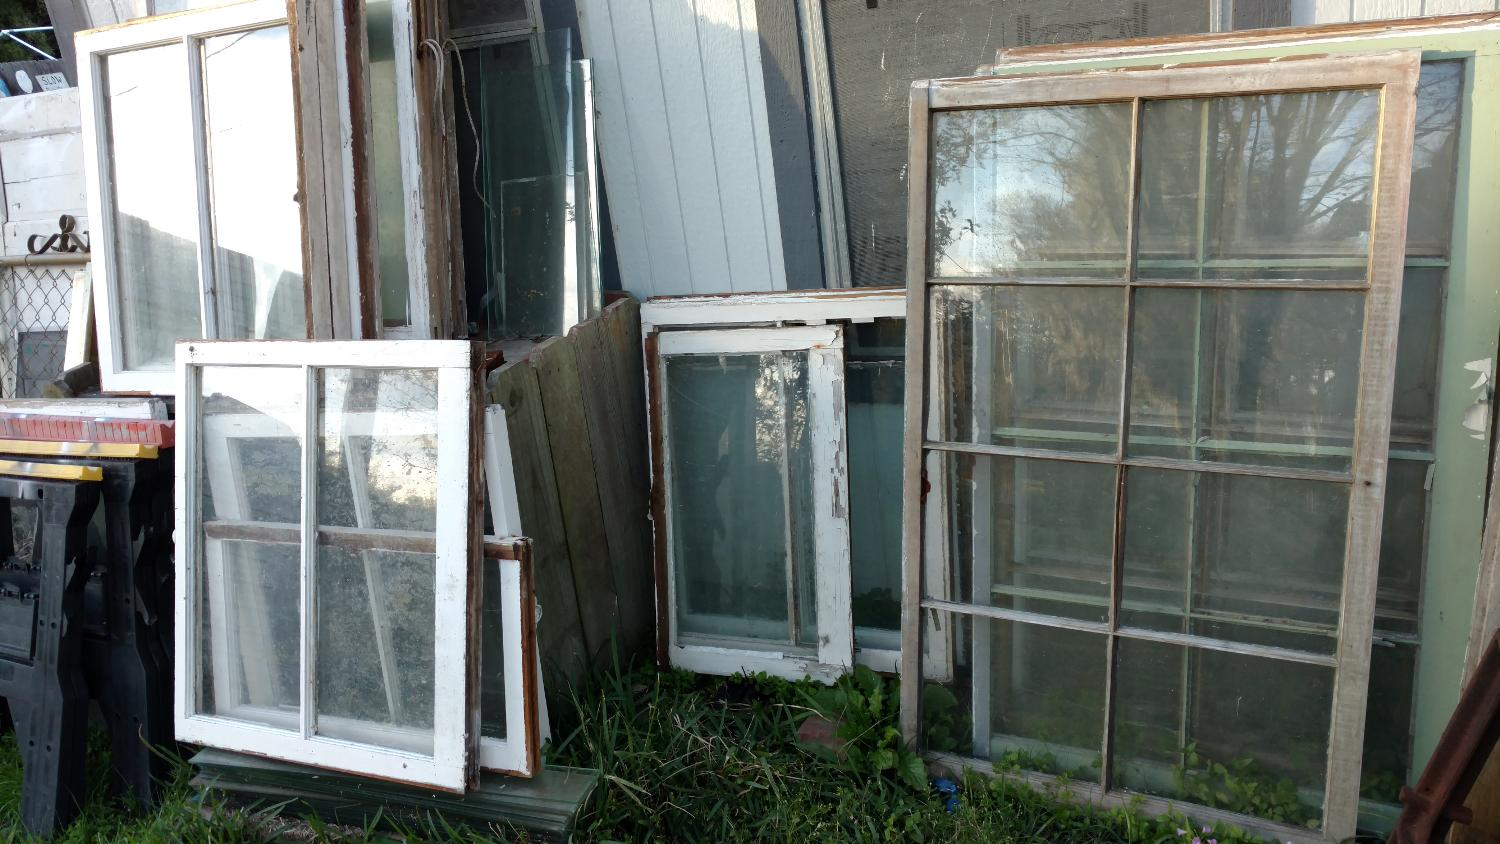 Marvelous photograph of Best Old Wood Framed Windows for sale in Brazoria County Texas for  with #7E6C4D color and 1500x844 pixels